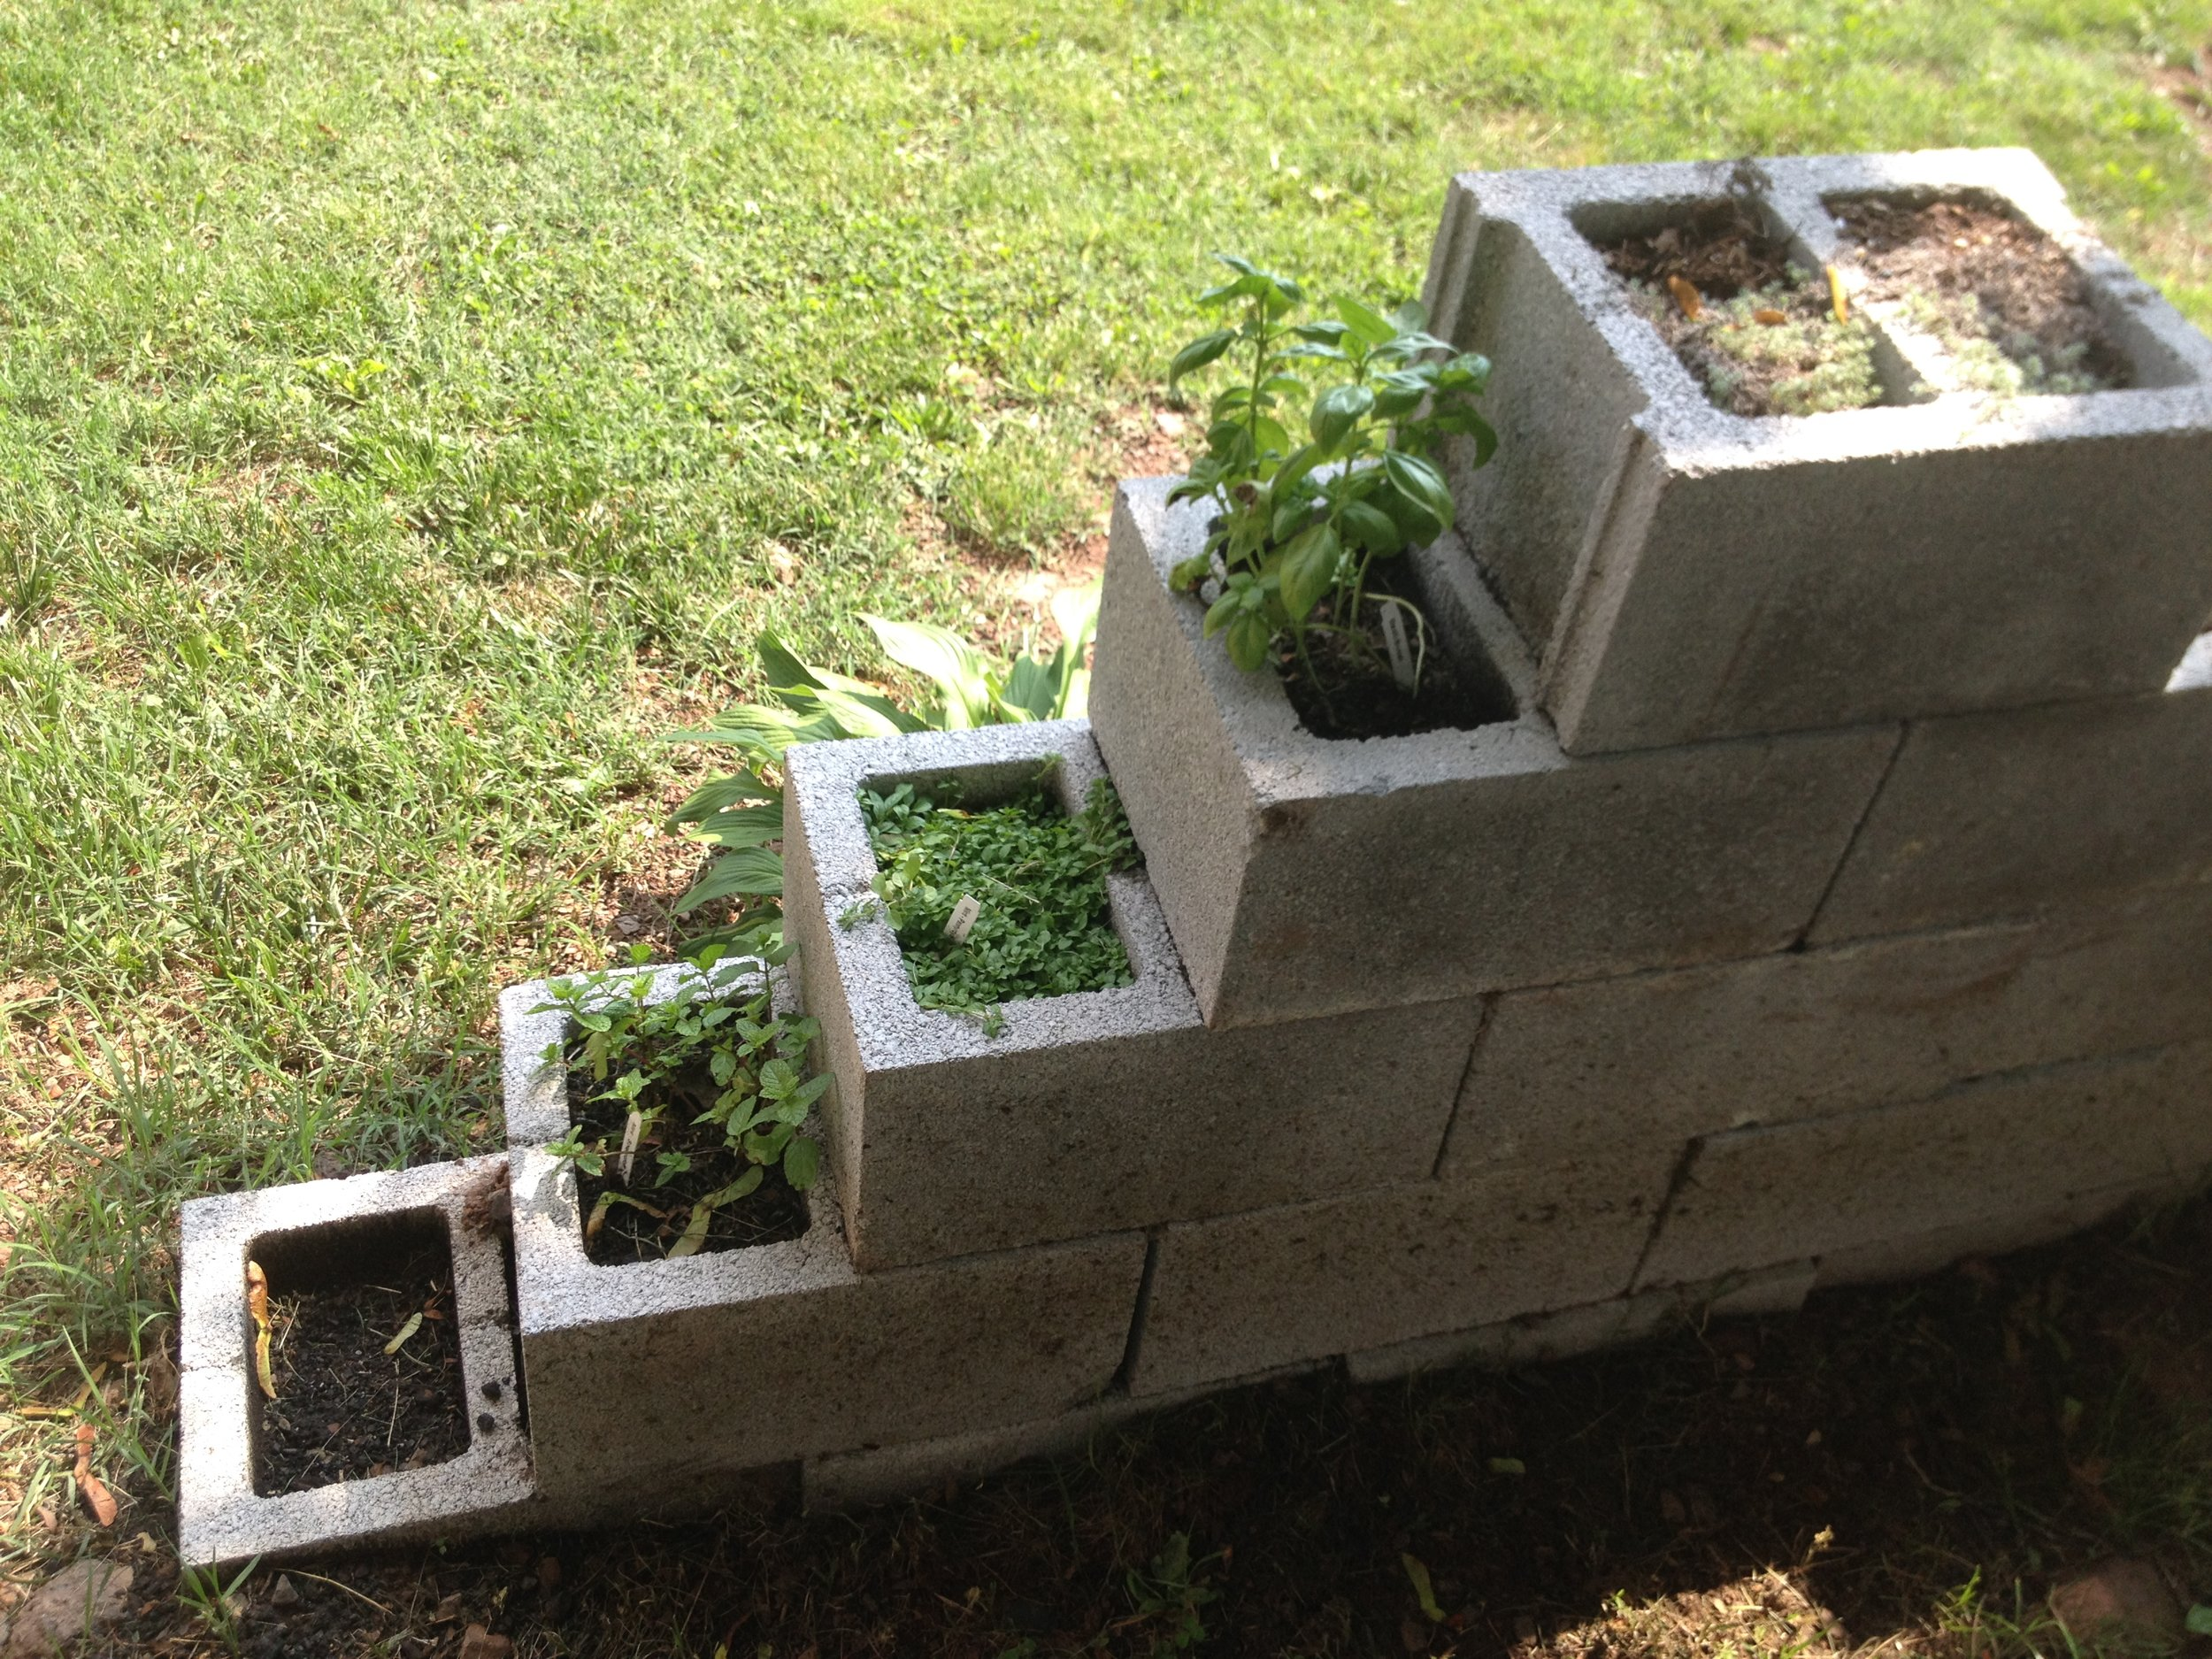 Hill School's pyramid garden packs in herbs in a vertical space.